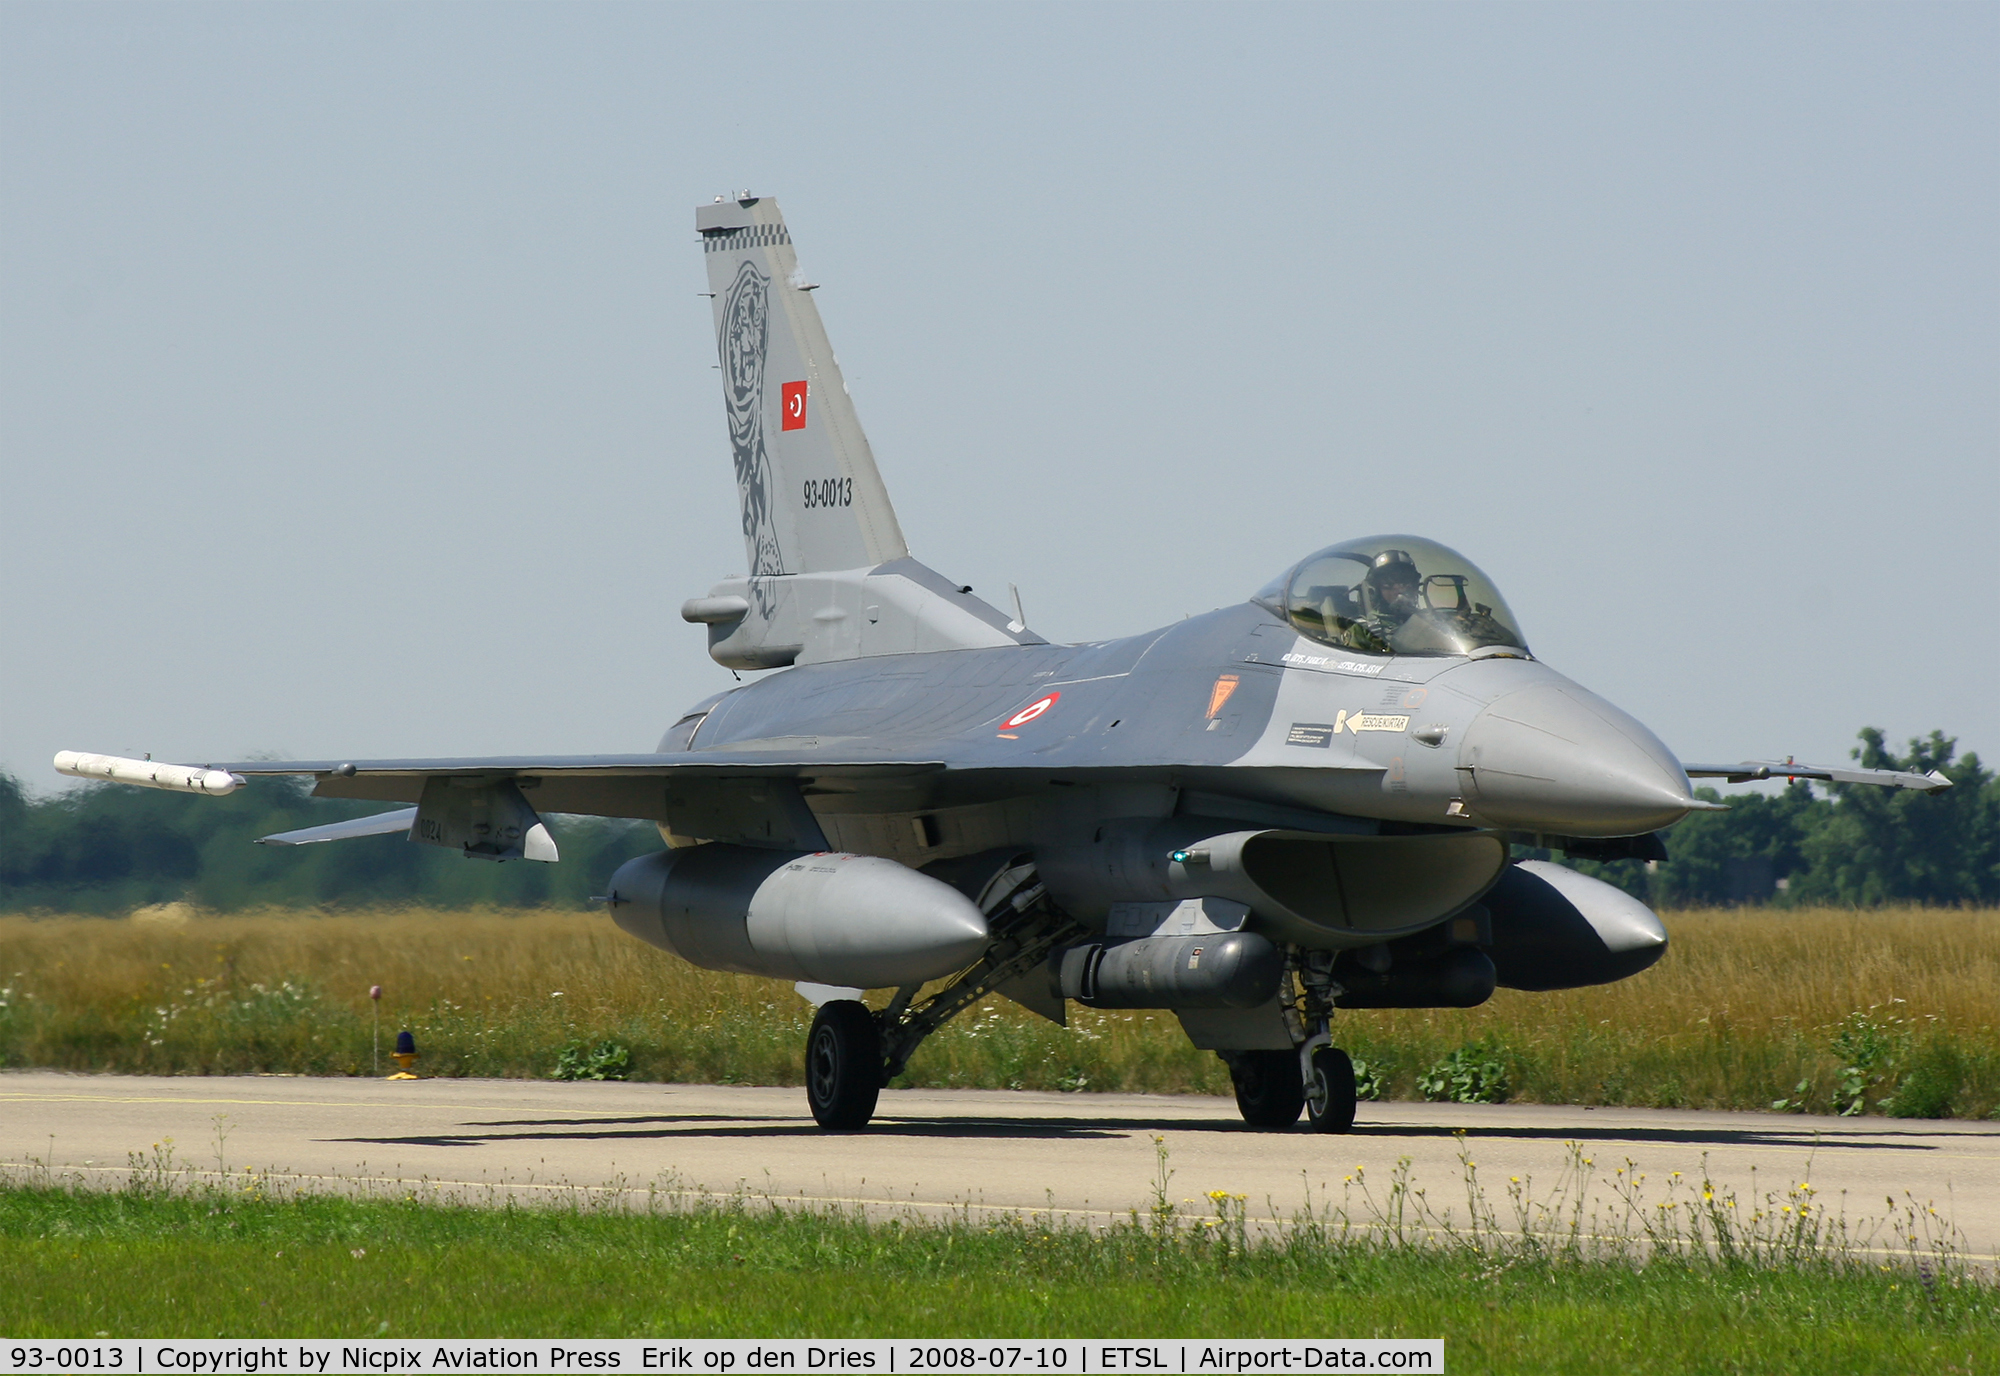 93-0013, Lockheed F-16C Fighting Falcon C/N 4R-135, 93-0013 is seen here on the taxitrack of Lechfeld AB during the exercise ELITE '08.